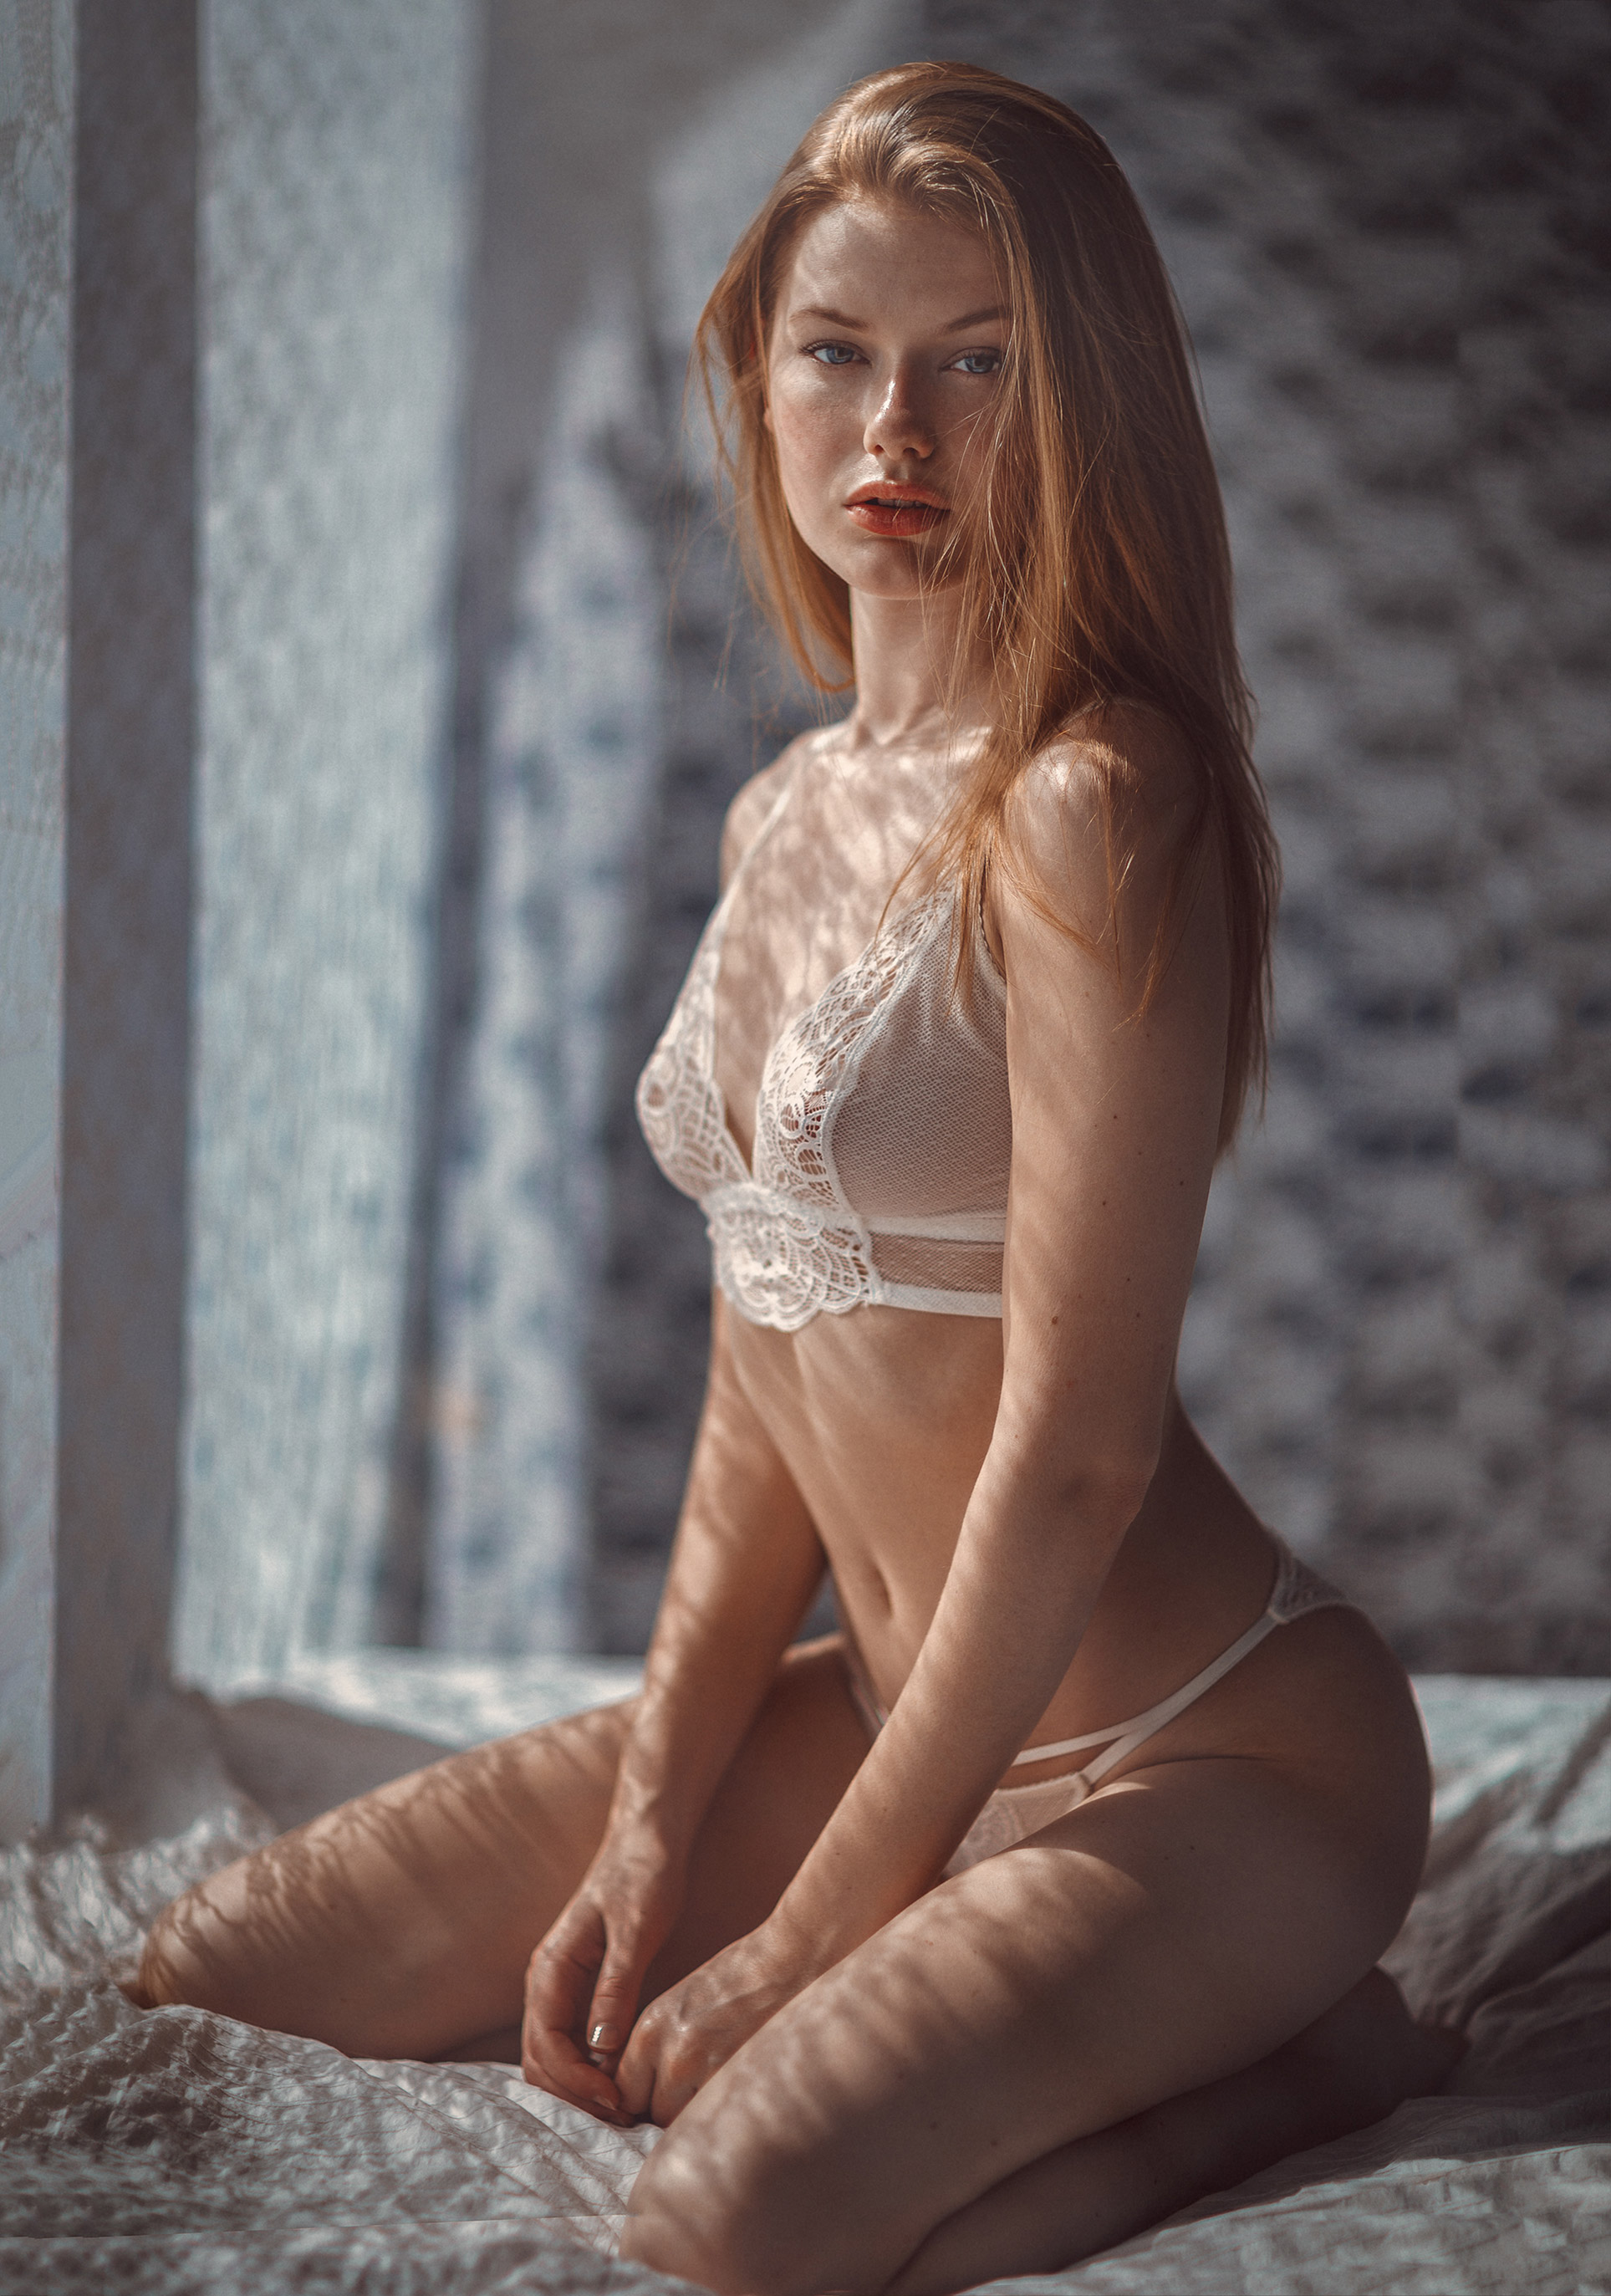 Anna Levsen in sexy lingerie by Thomas Agatz